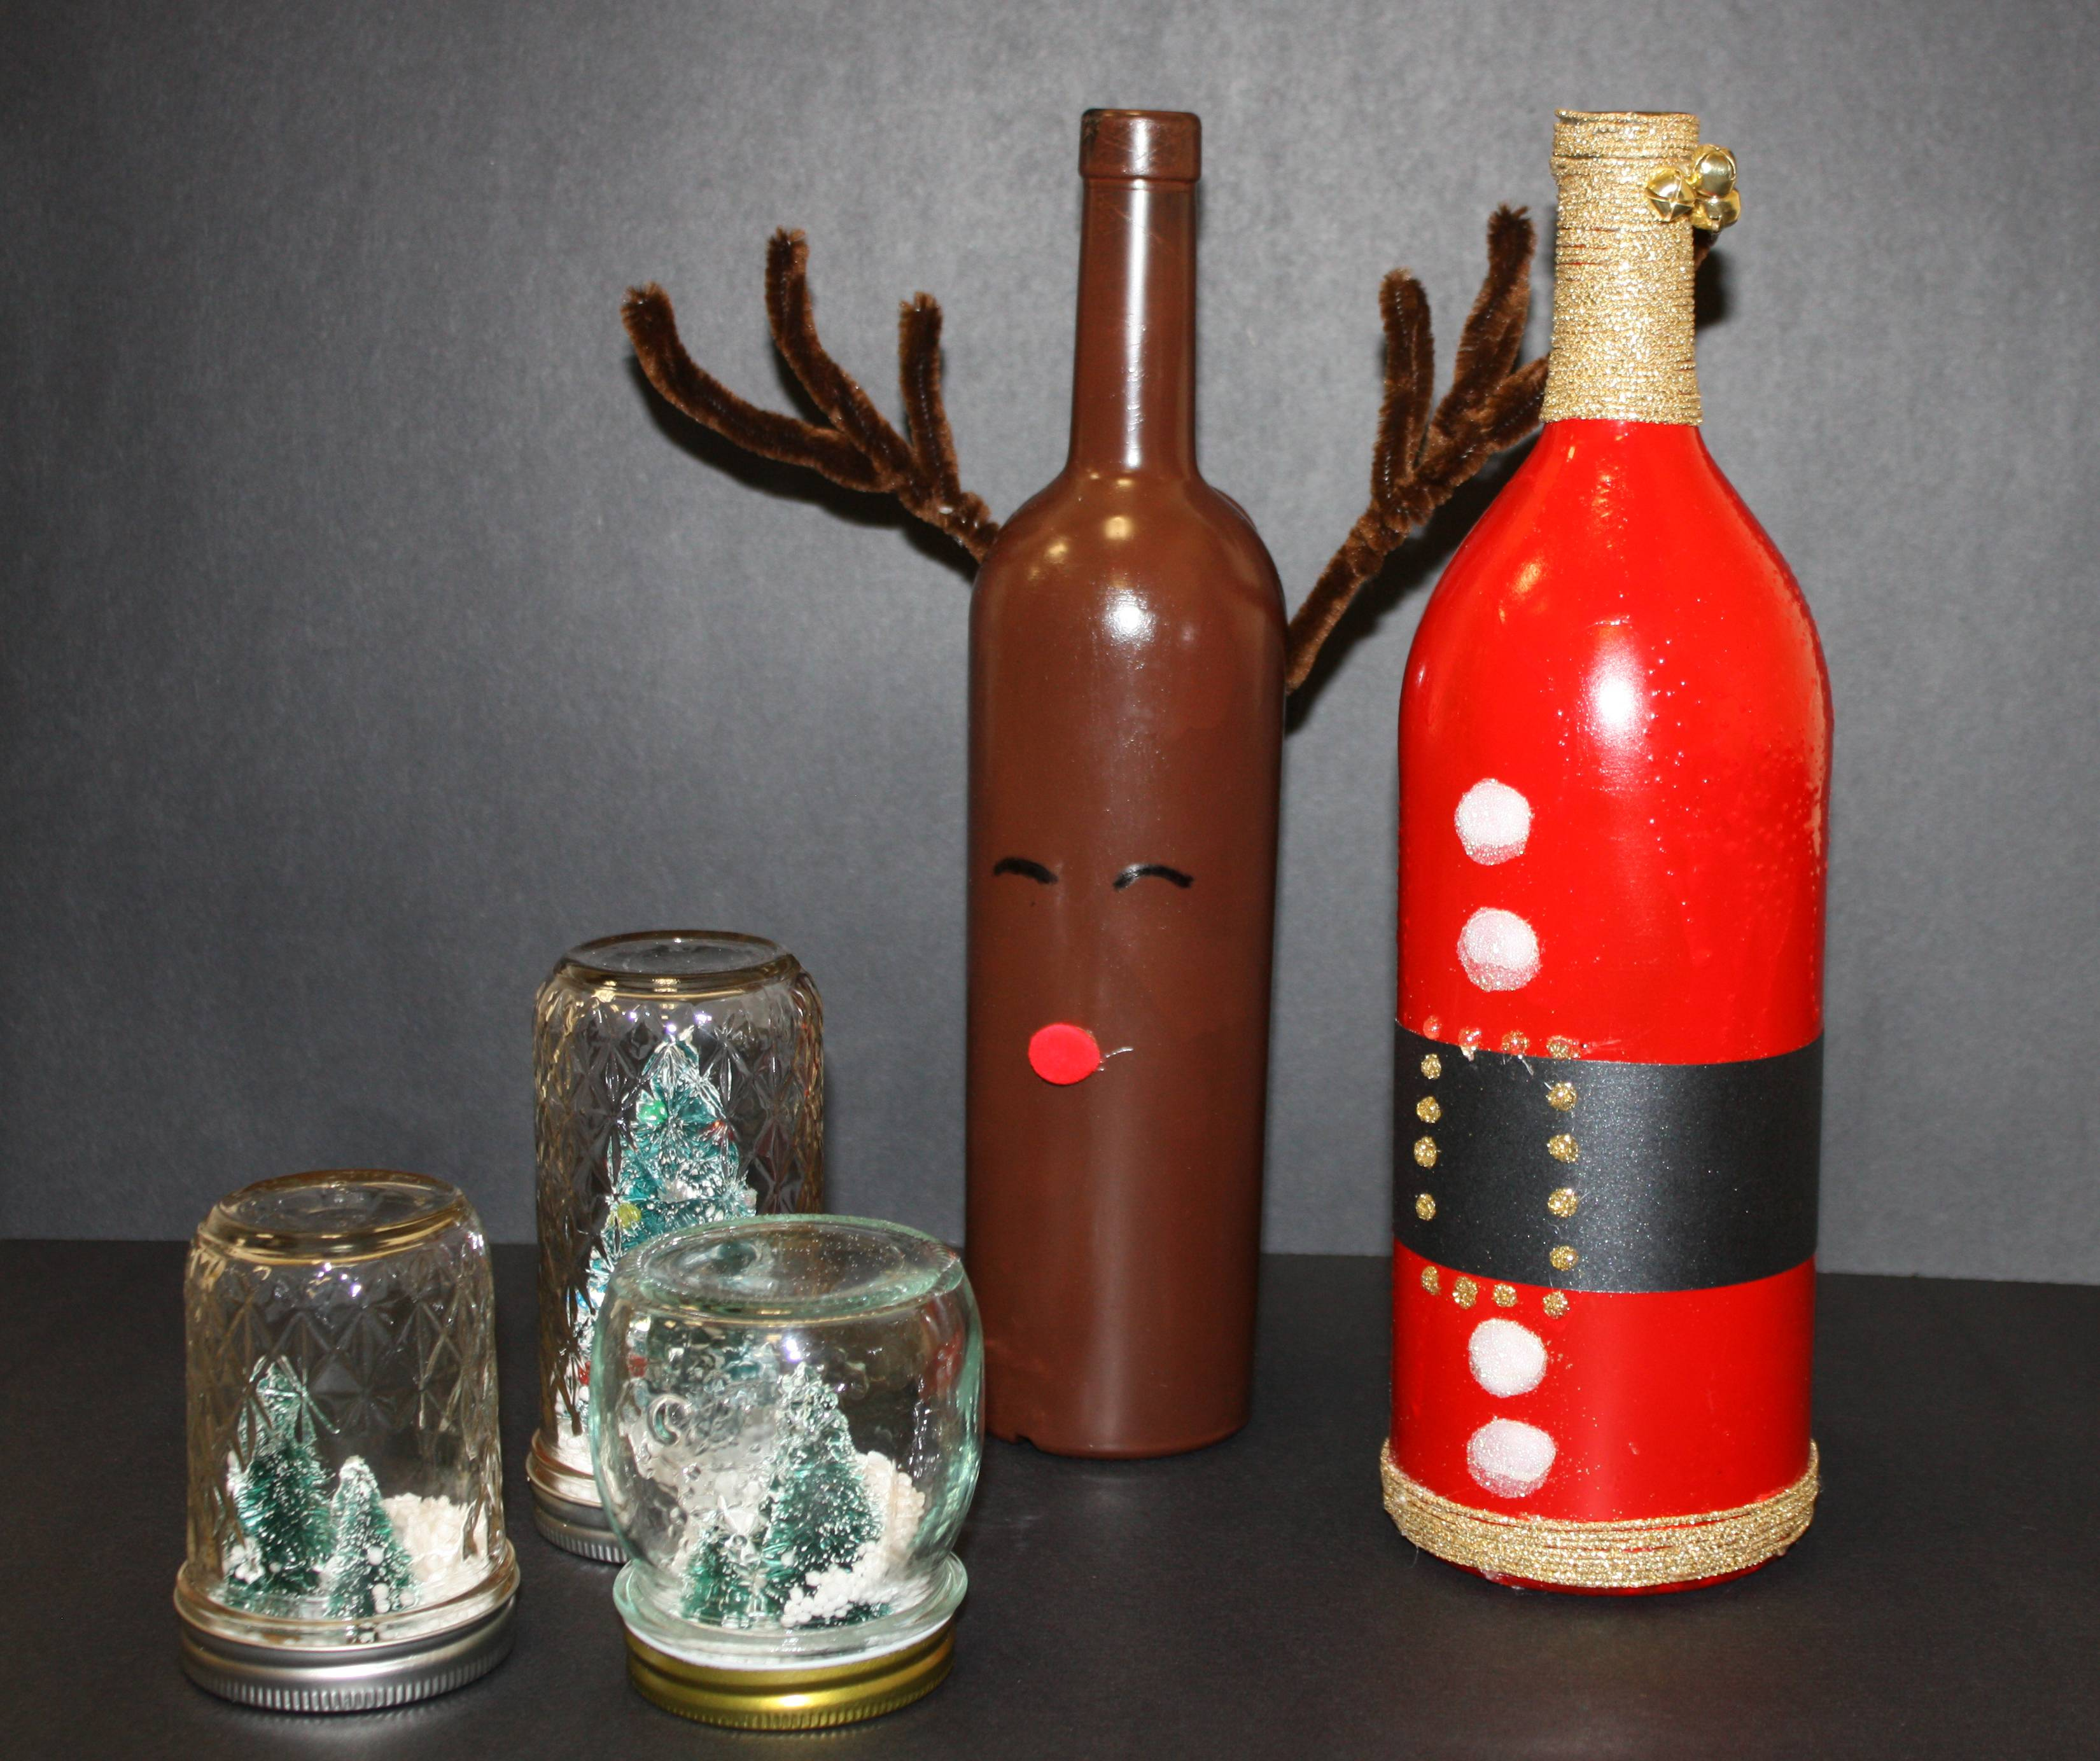 November's classes include decorated wine bottles and mason jar snow globes.